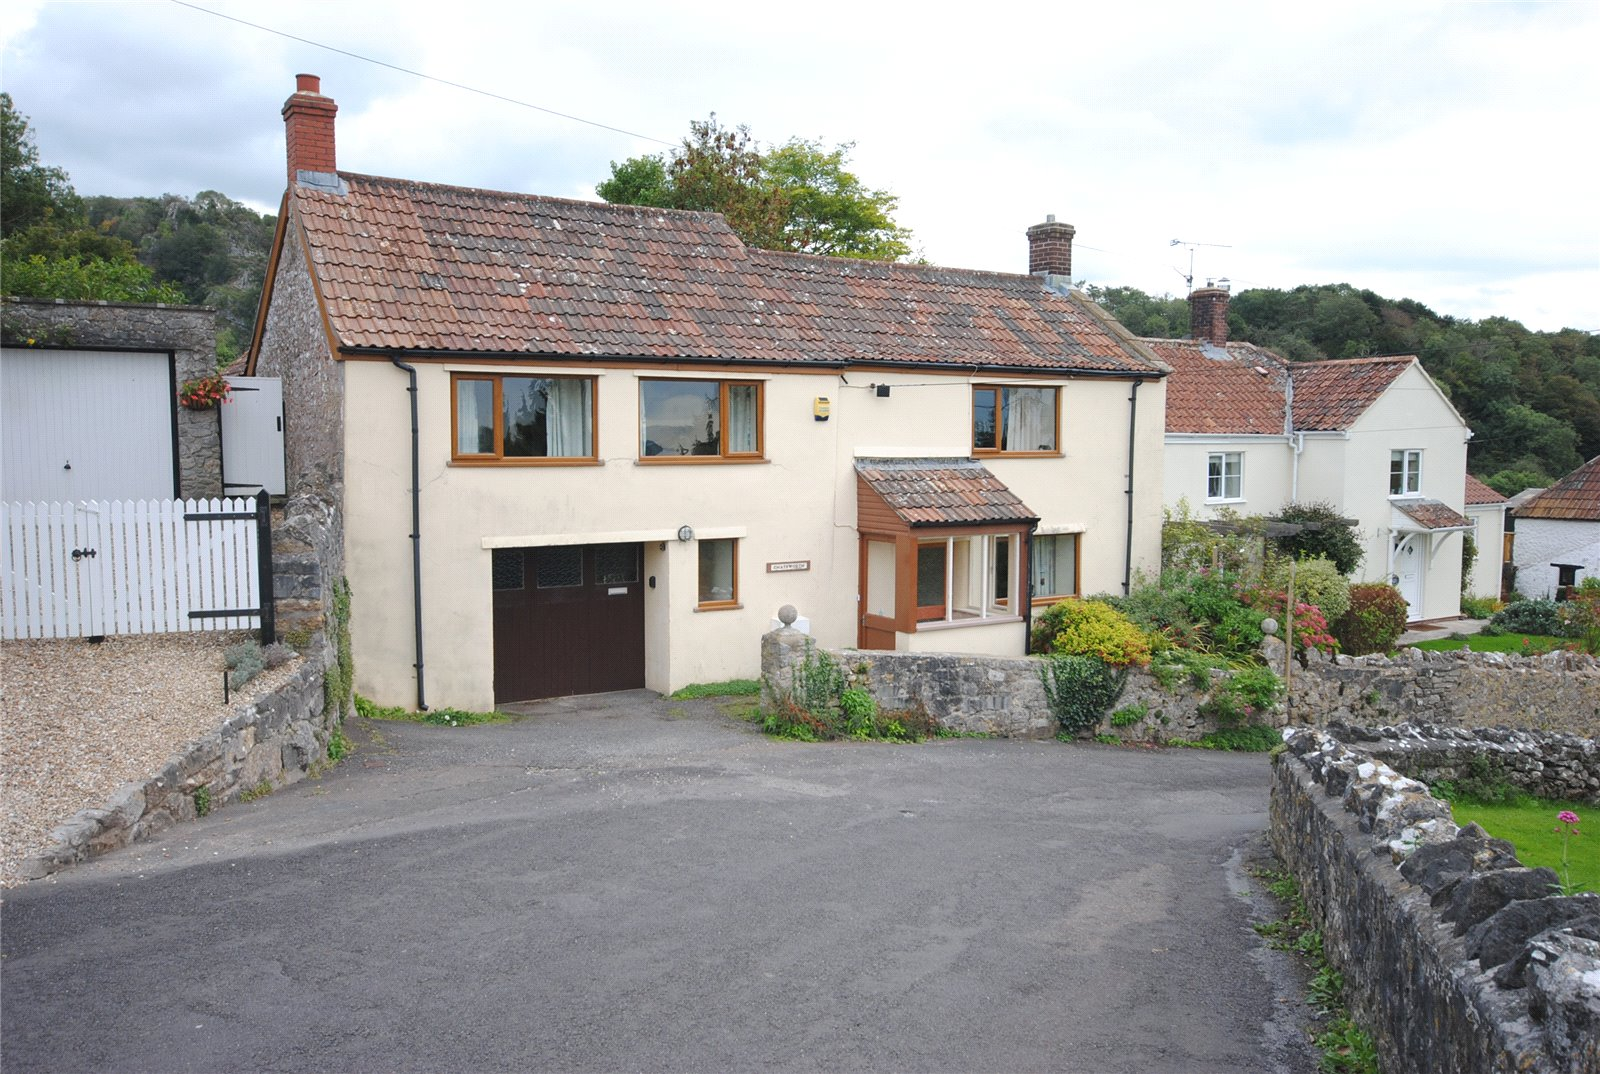 3 Bedrooms Terraced House for sale in Tuttors Hill Cheddar Somerset BS27